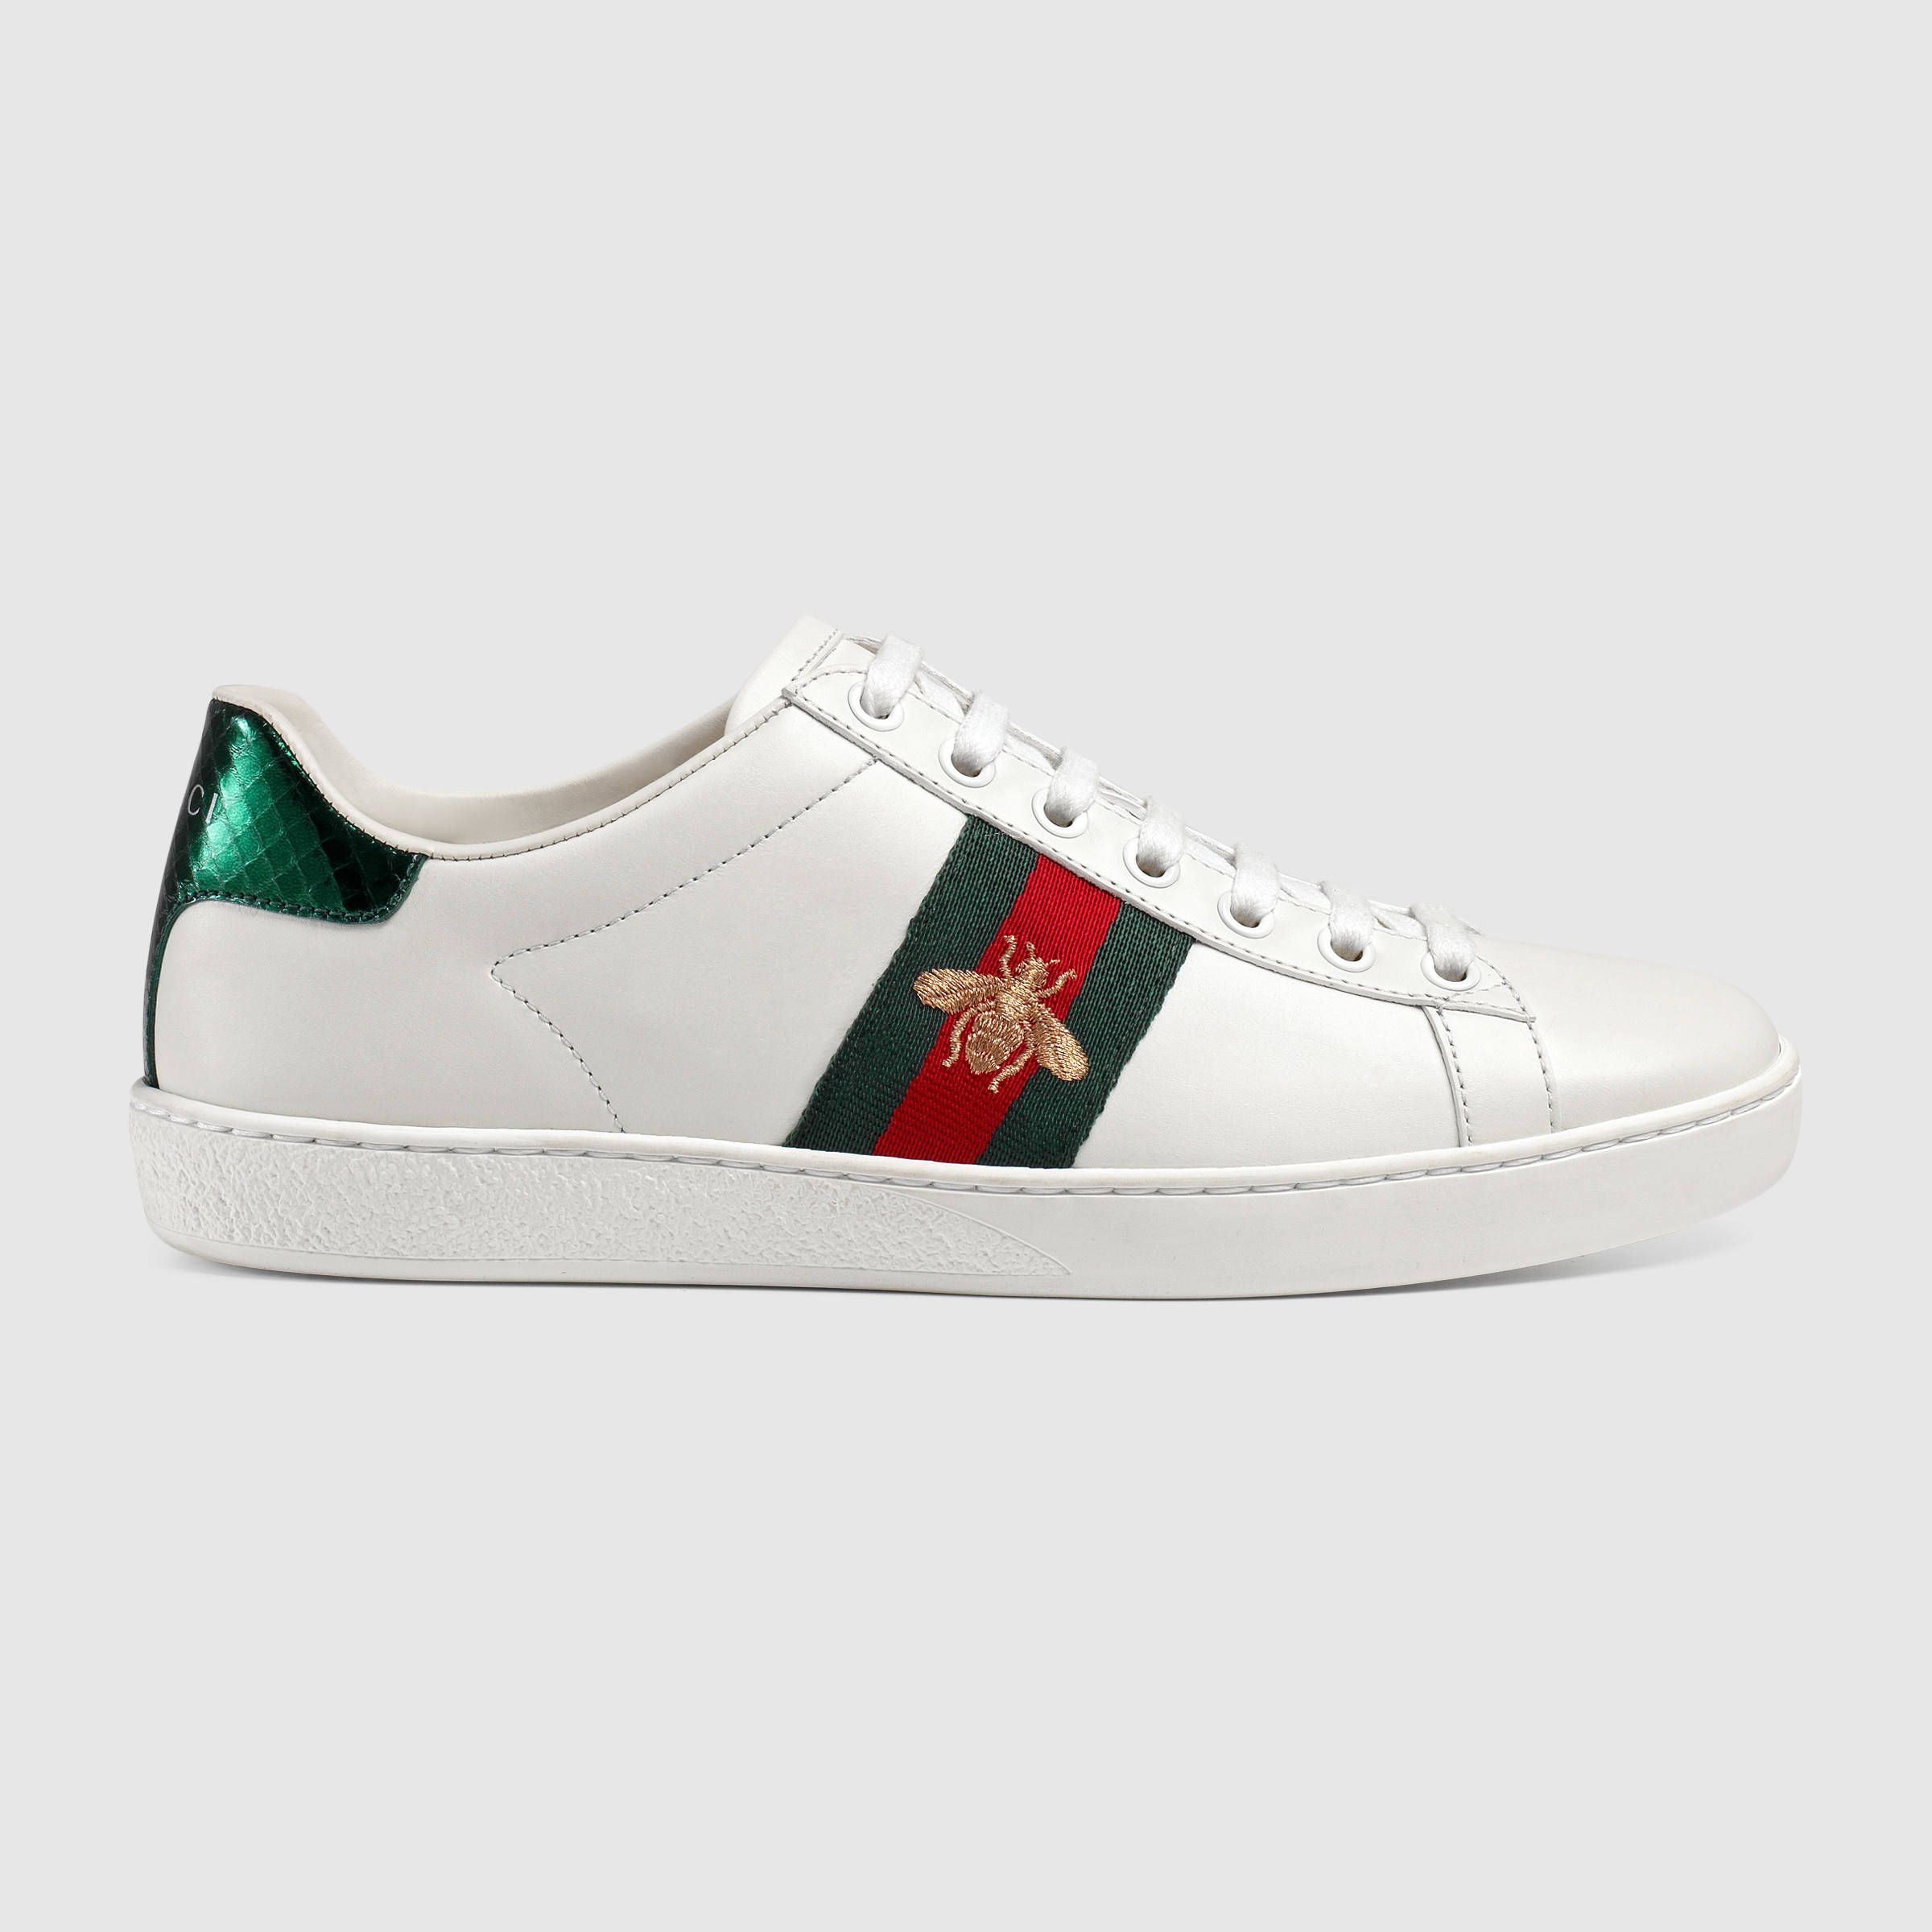 Classic lux sneakers    Gucci Ace embroidered sneaker 39a4a21d2e2